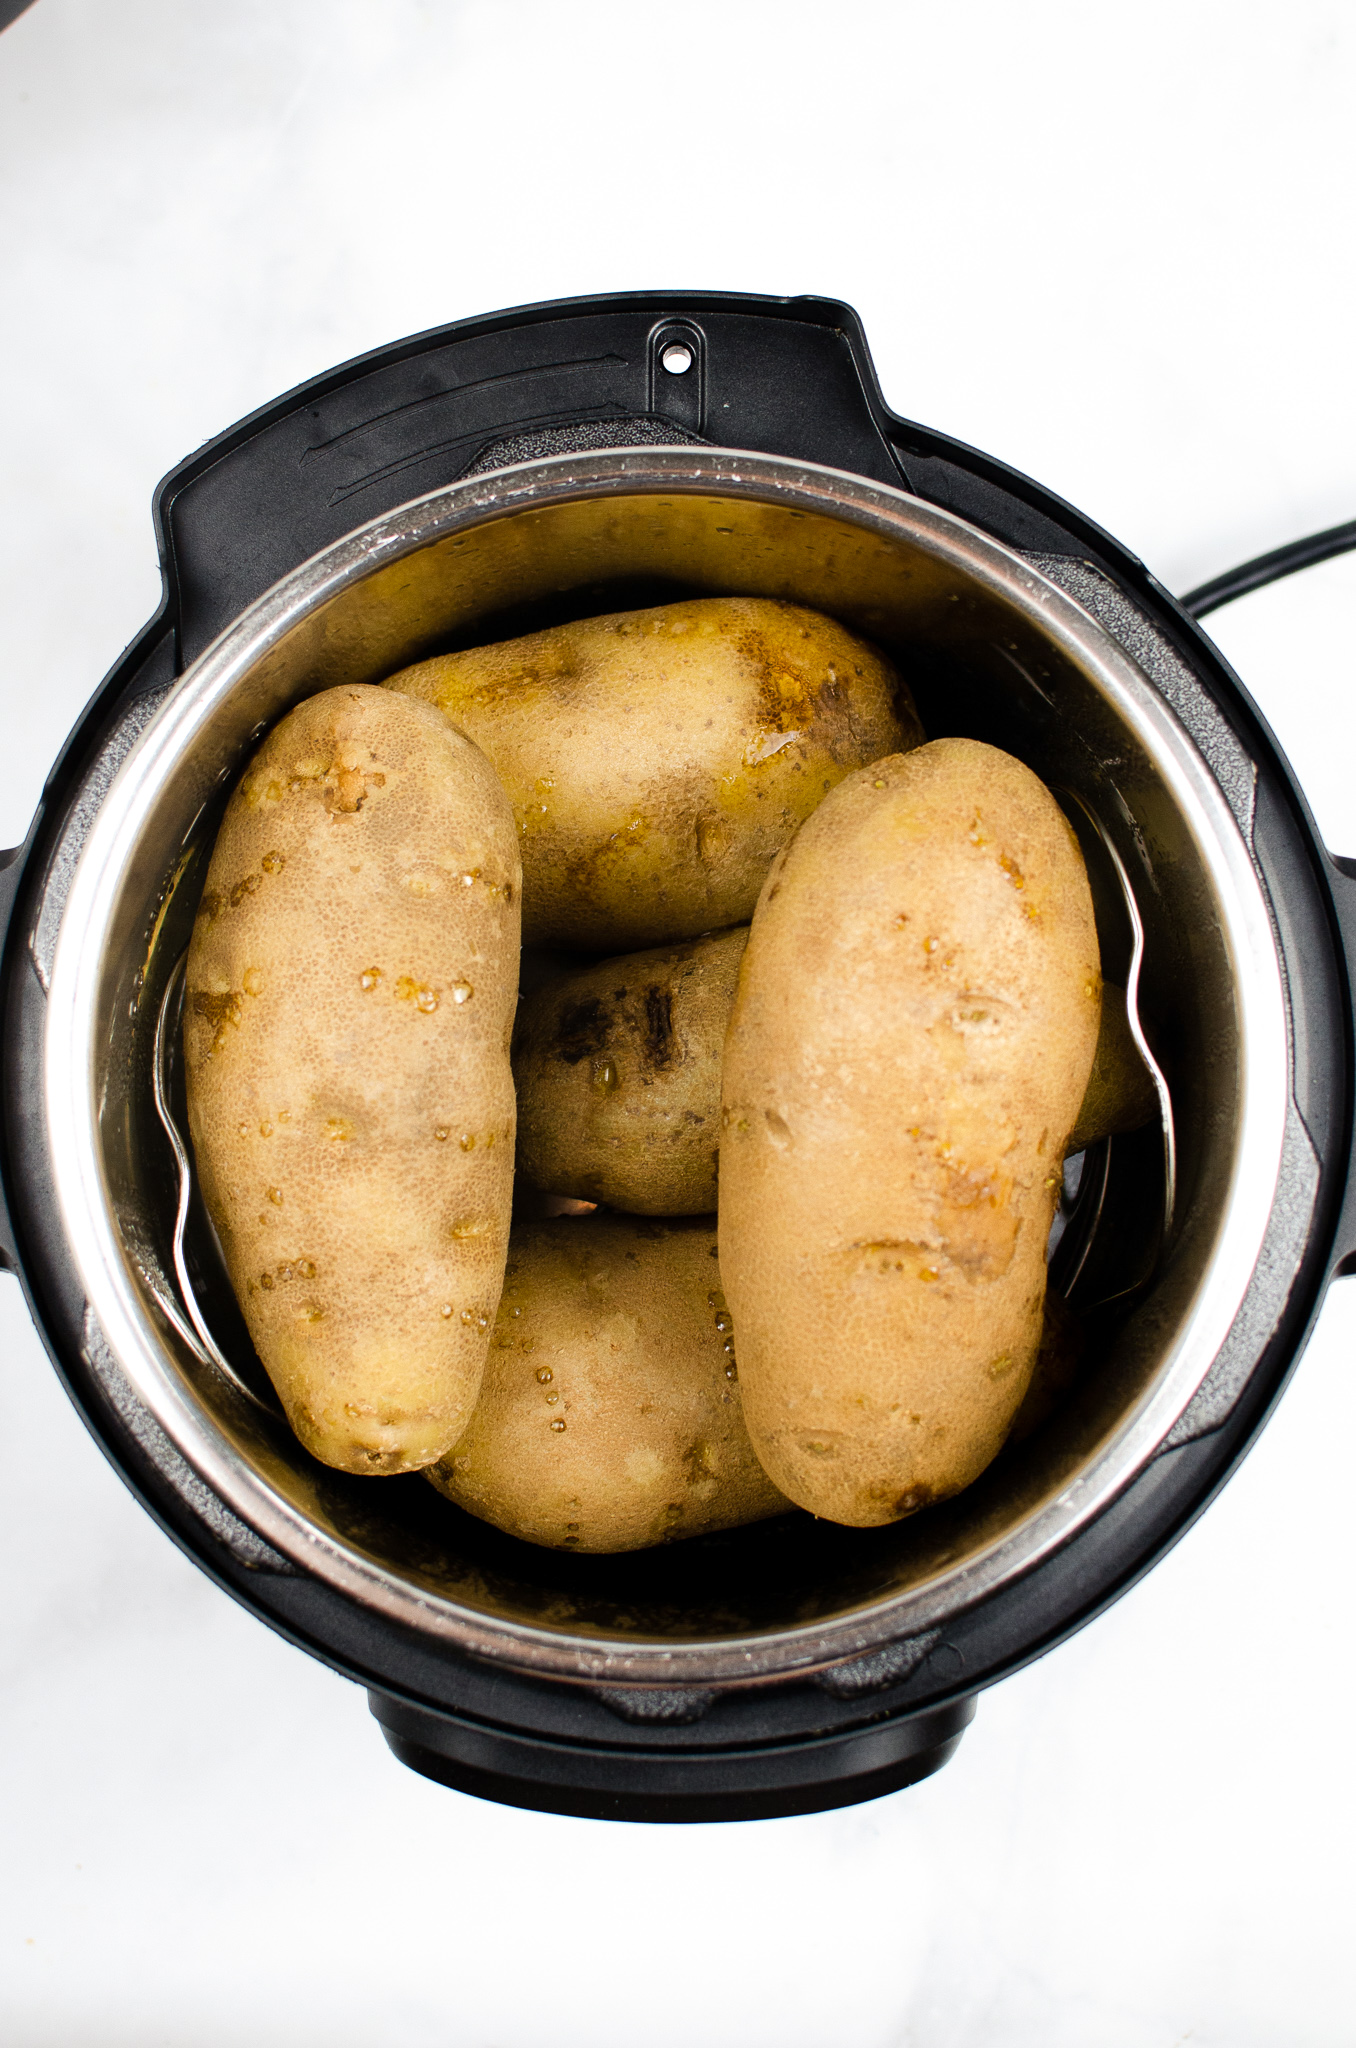 This foolproof recipe creates fluffy, fork-tender potatoes in half the time of the oven. Instant Pot Baked Potatoes use no foil and are great for busy nights. It's a pressure cooker recipe that's ready in just minutes.